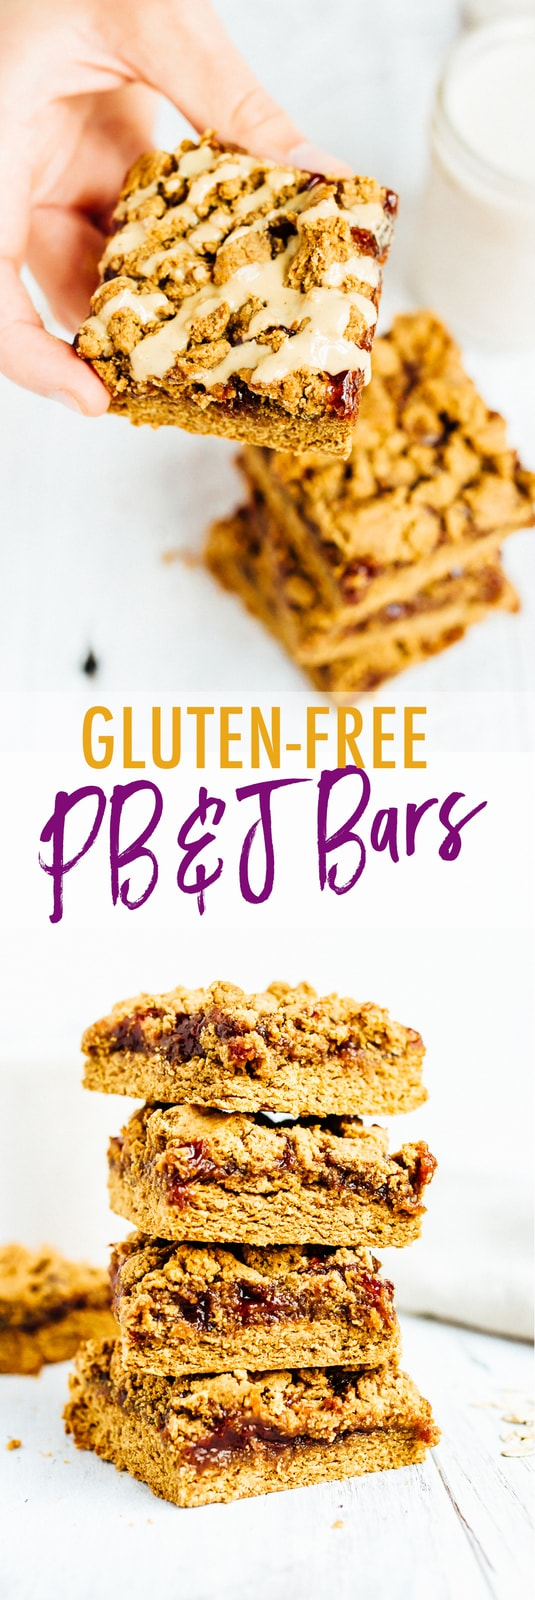 These PB&J Bars are a take on the classic sandwich we all know and love. Made with protein-packed peanut powder, oat flour, organic jam and coconut oil, you can feel good about enjoying these bars whenever you please.